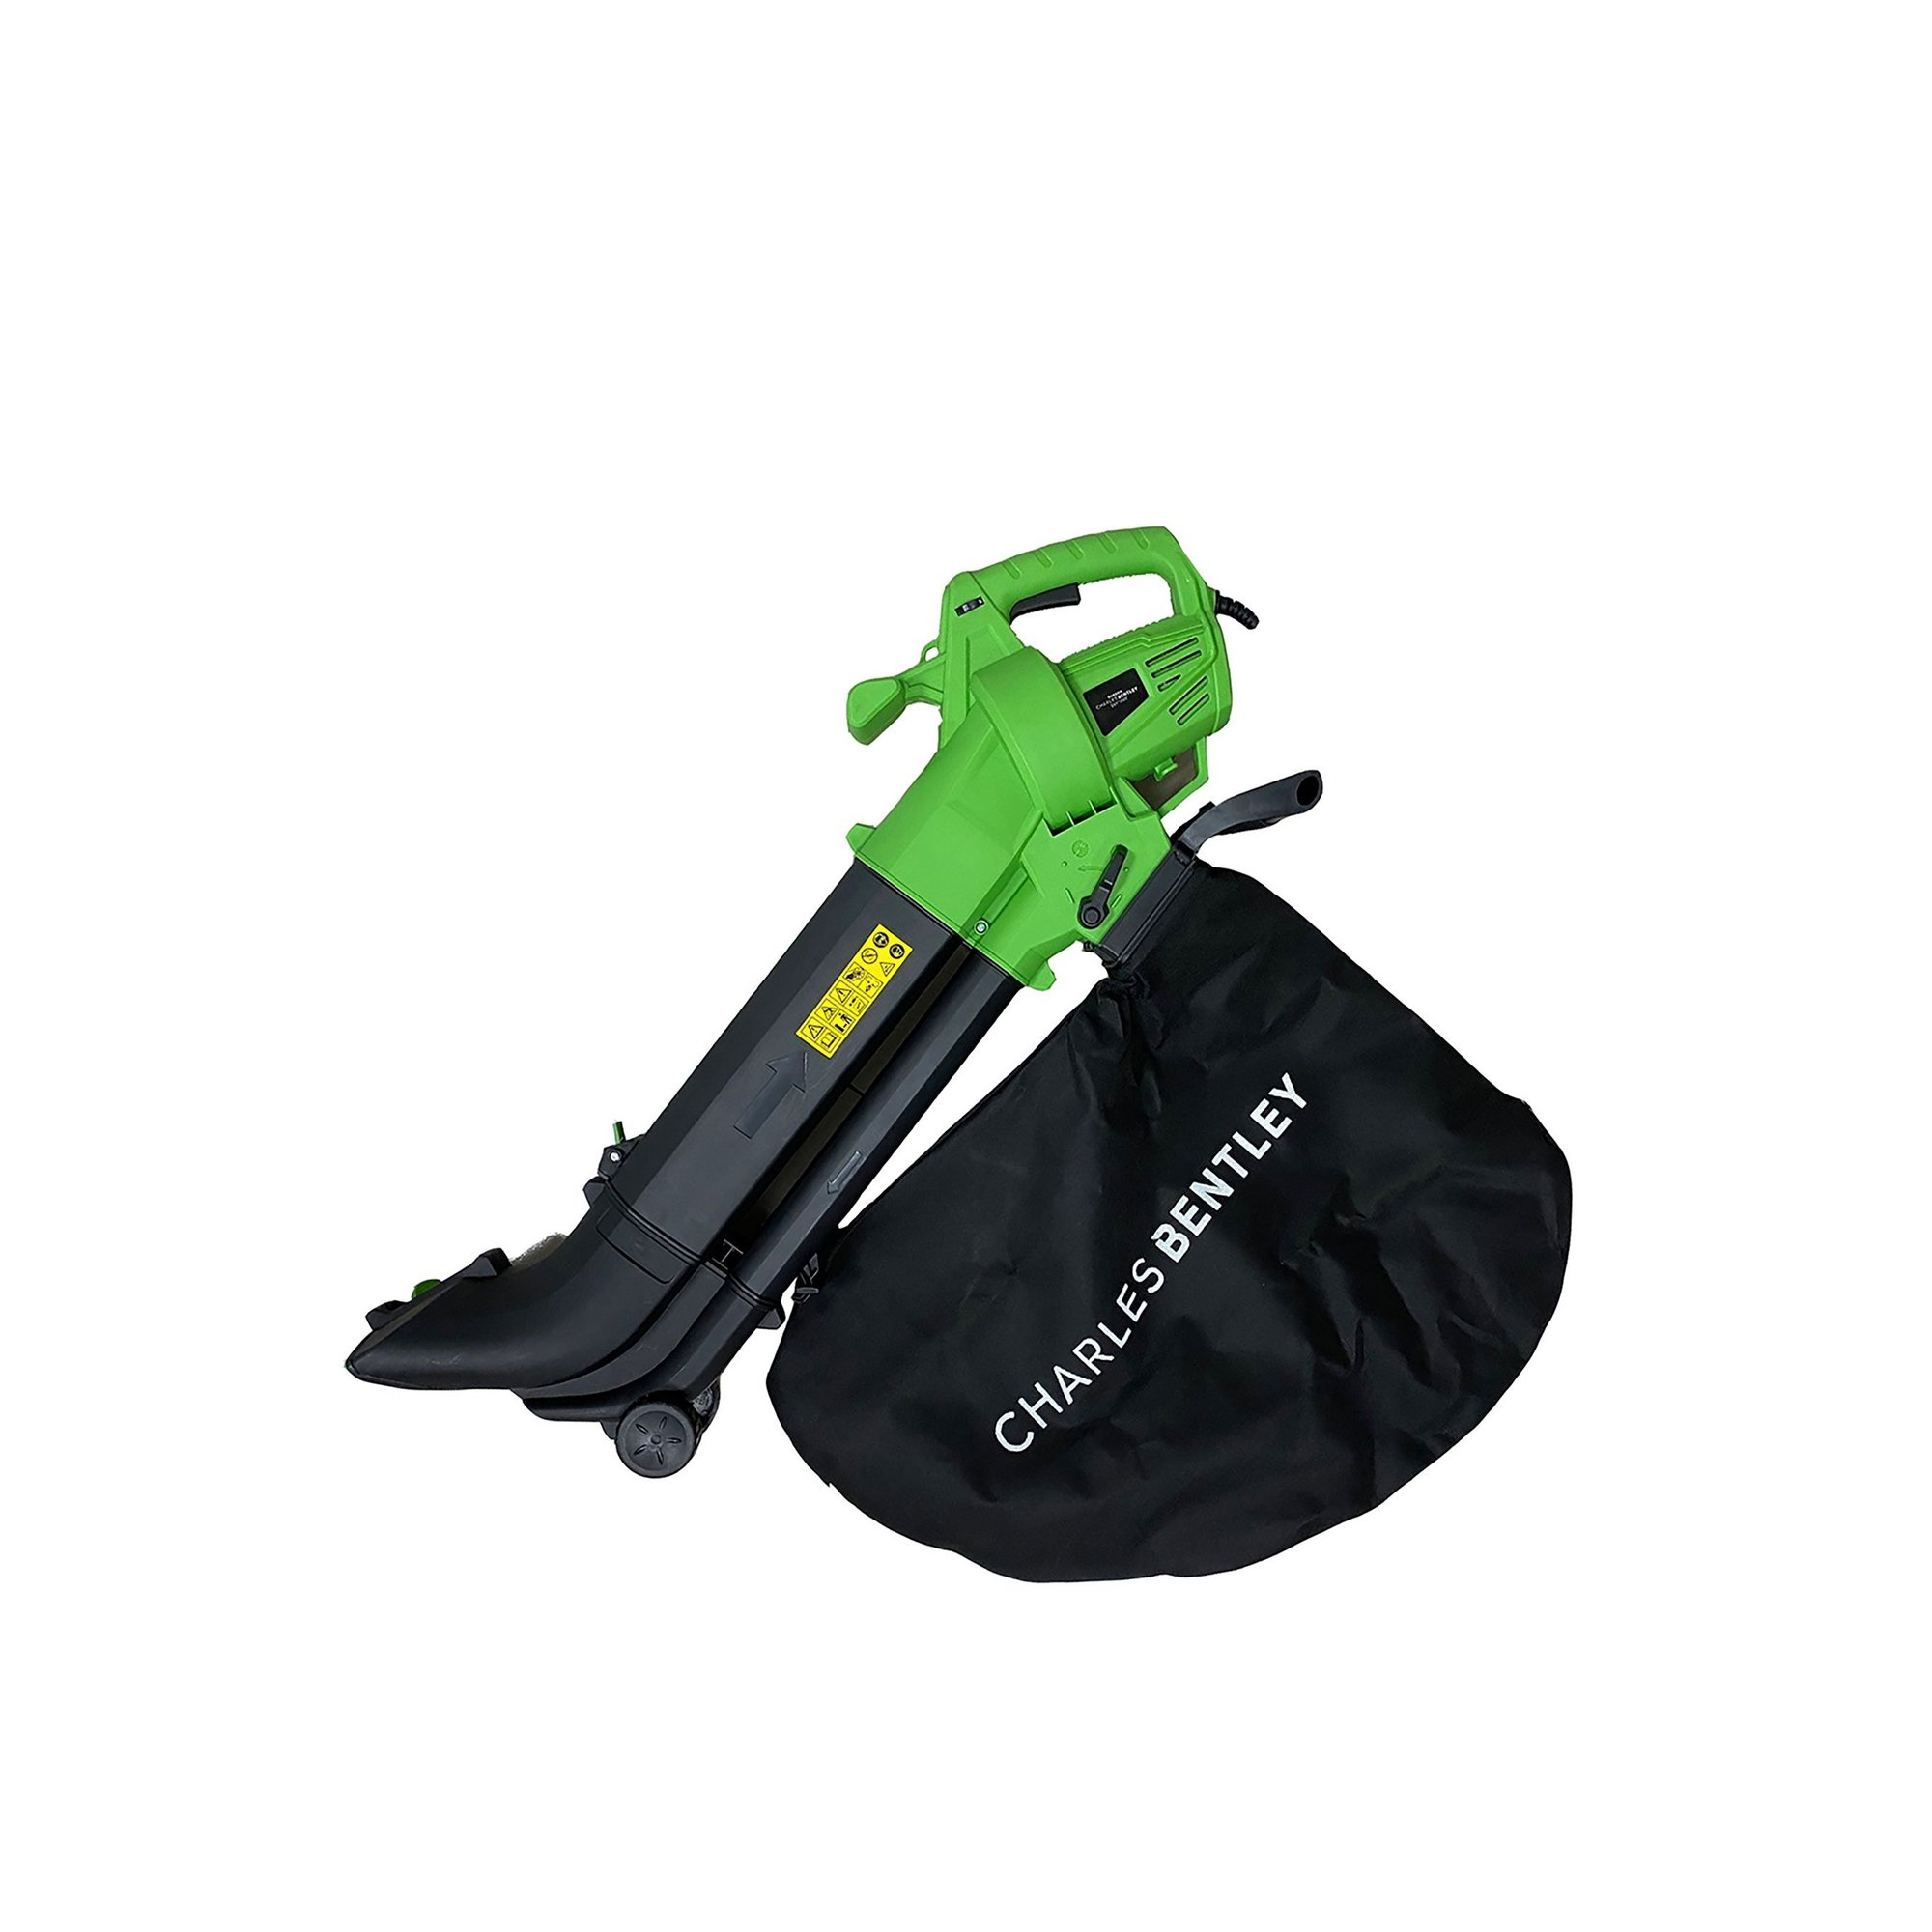 Image of Telescopic Electric Leaf Blower